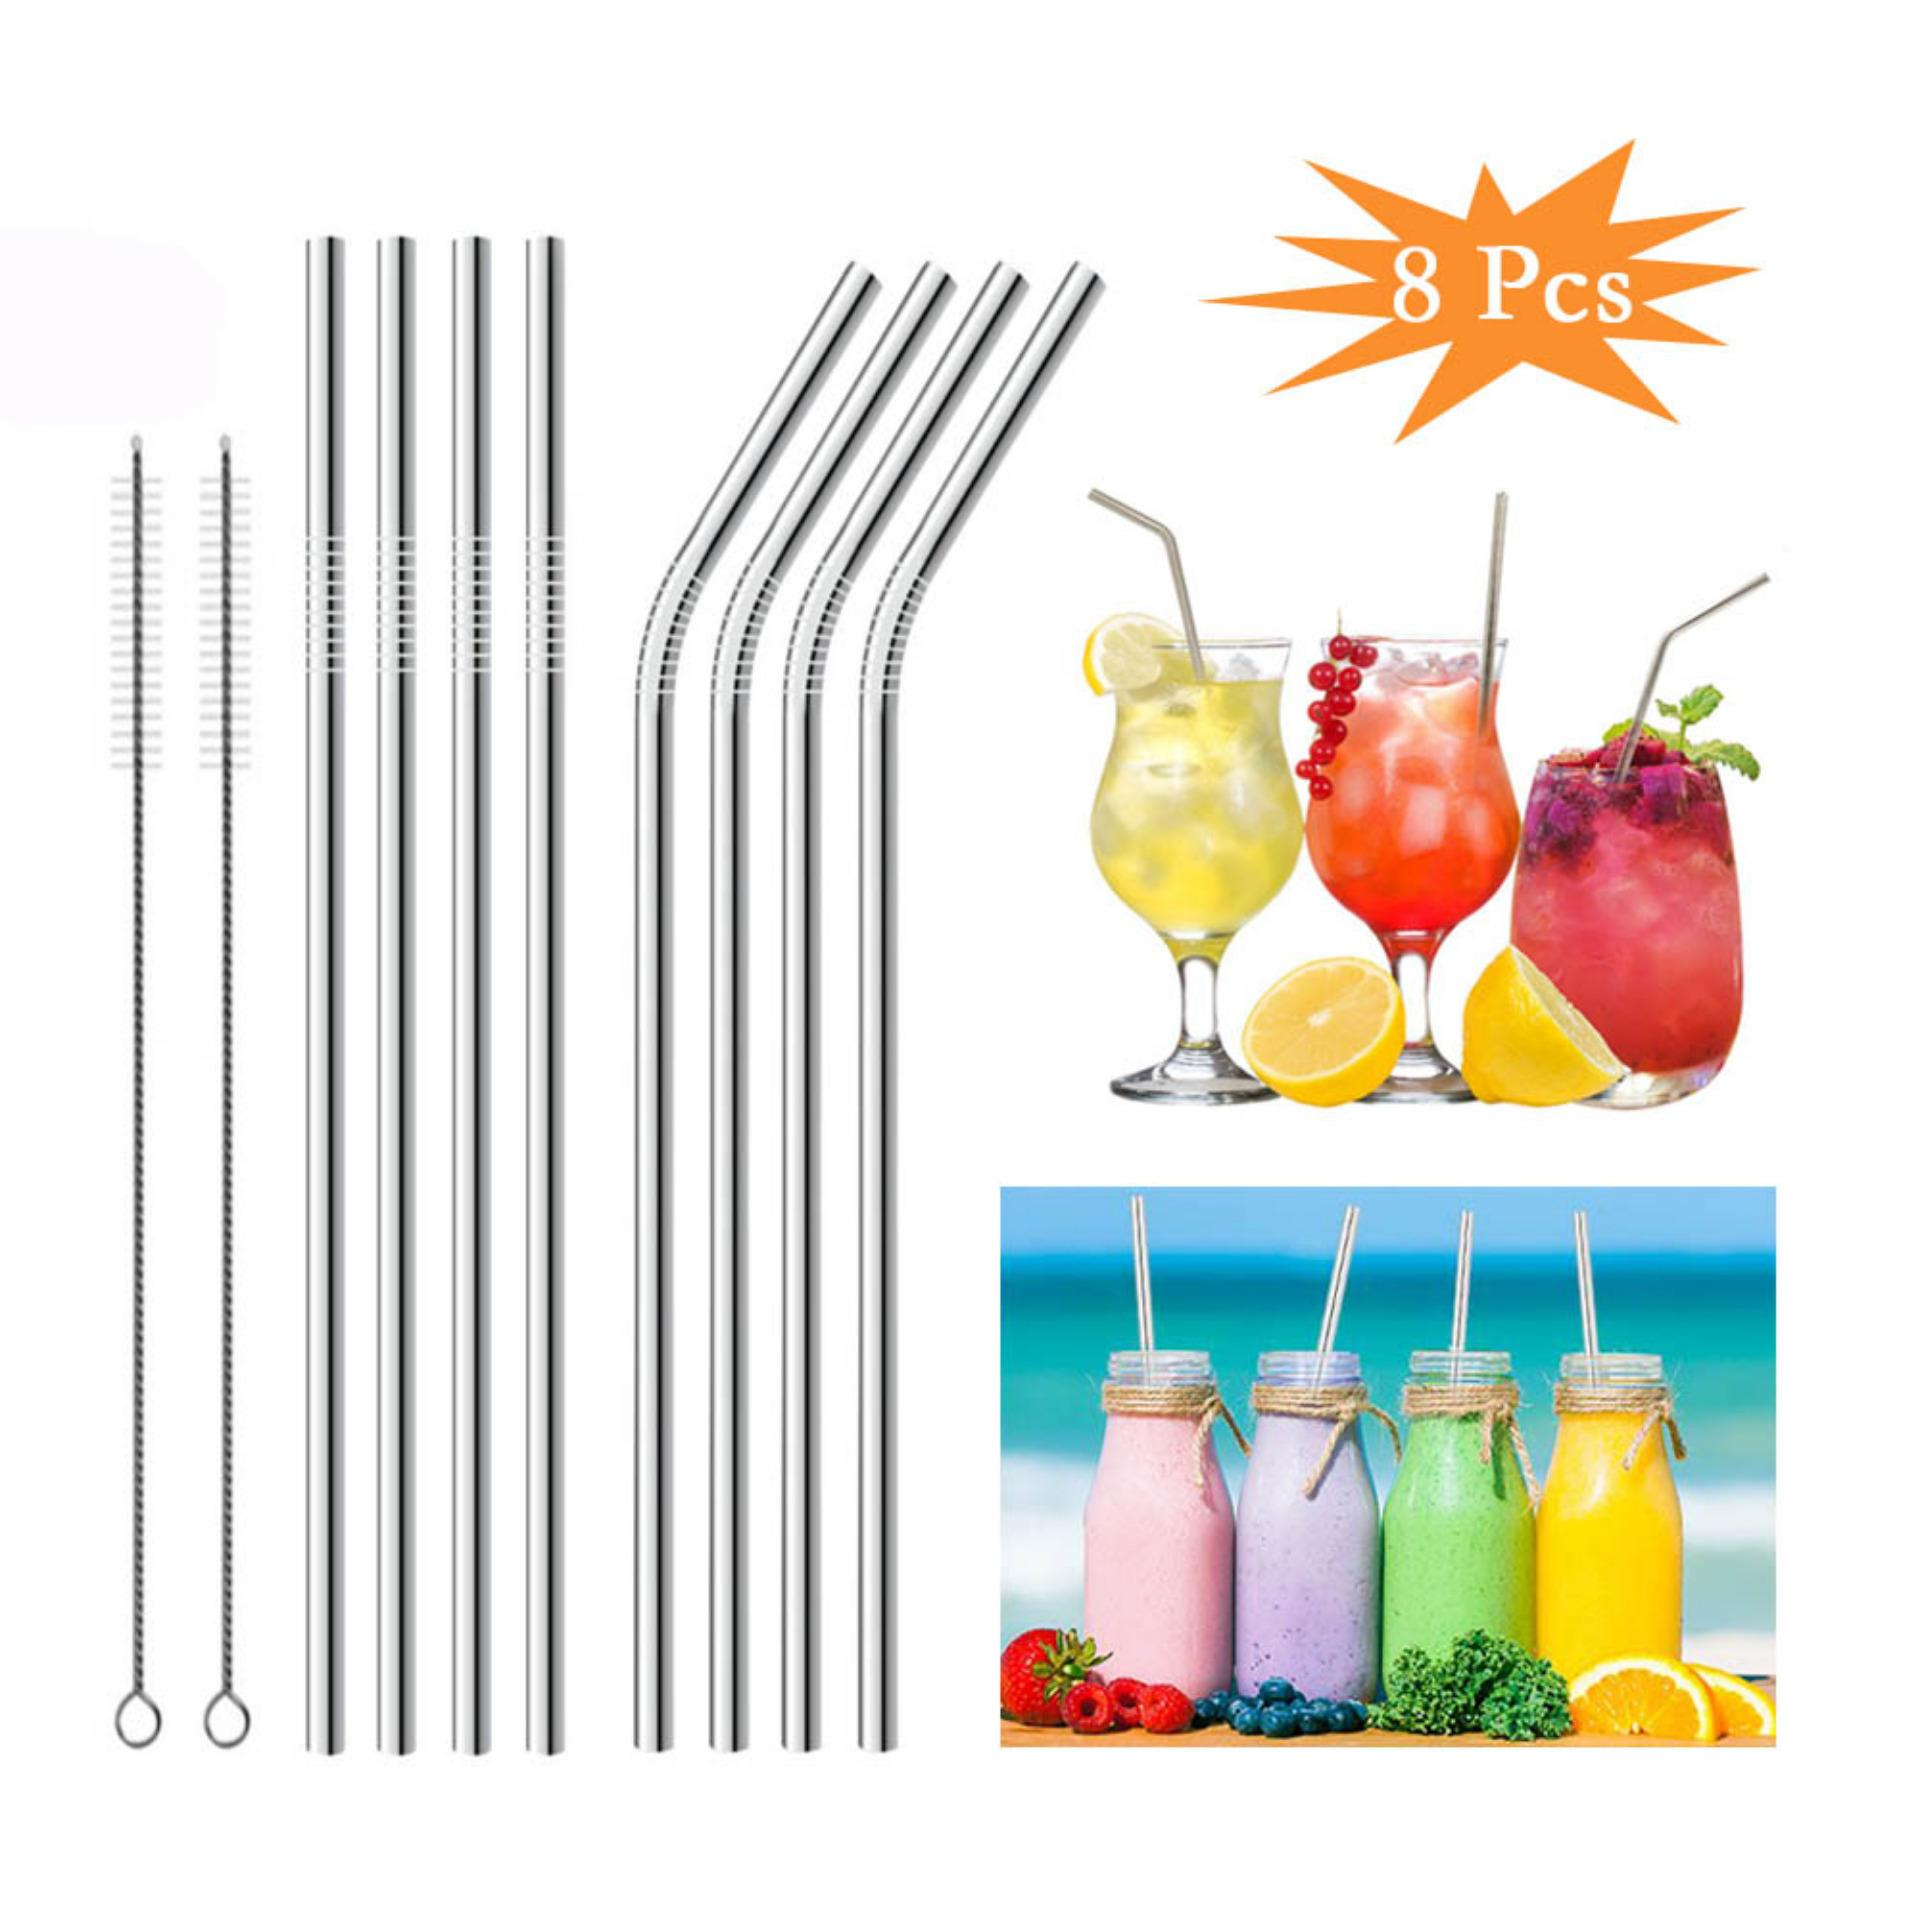 8 Pcs Straight Bent Stainless Steel Reusable Long Drinking Straw